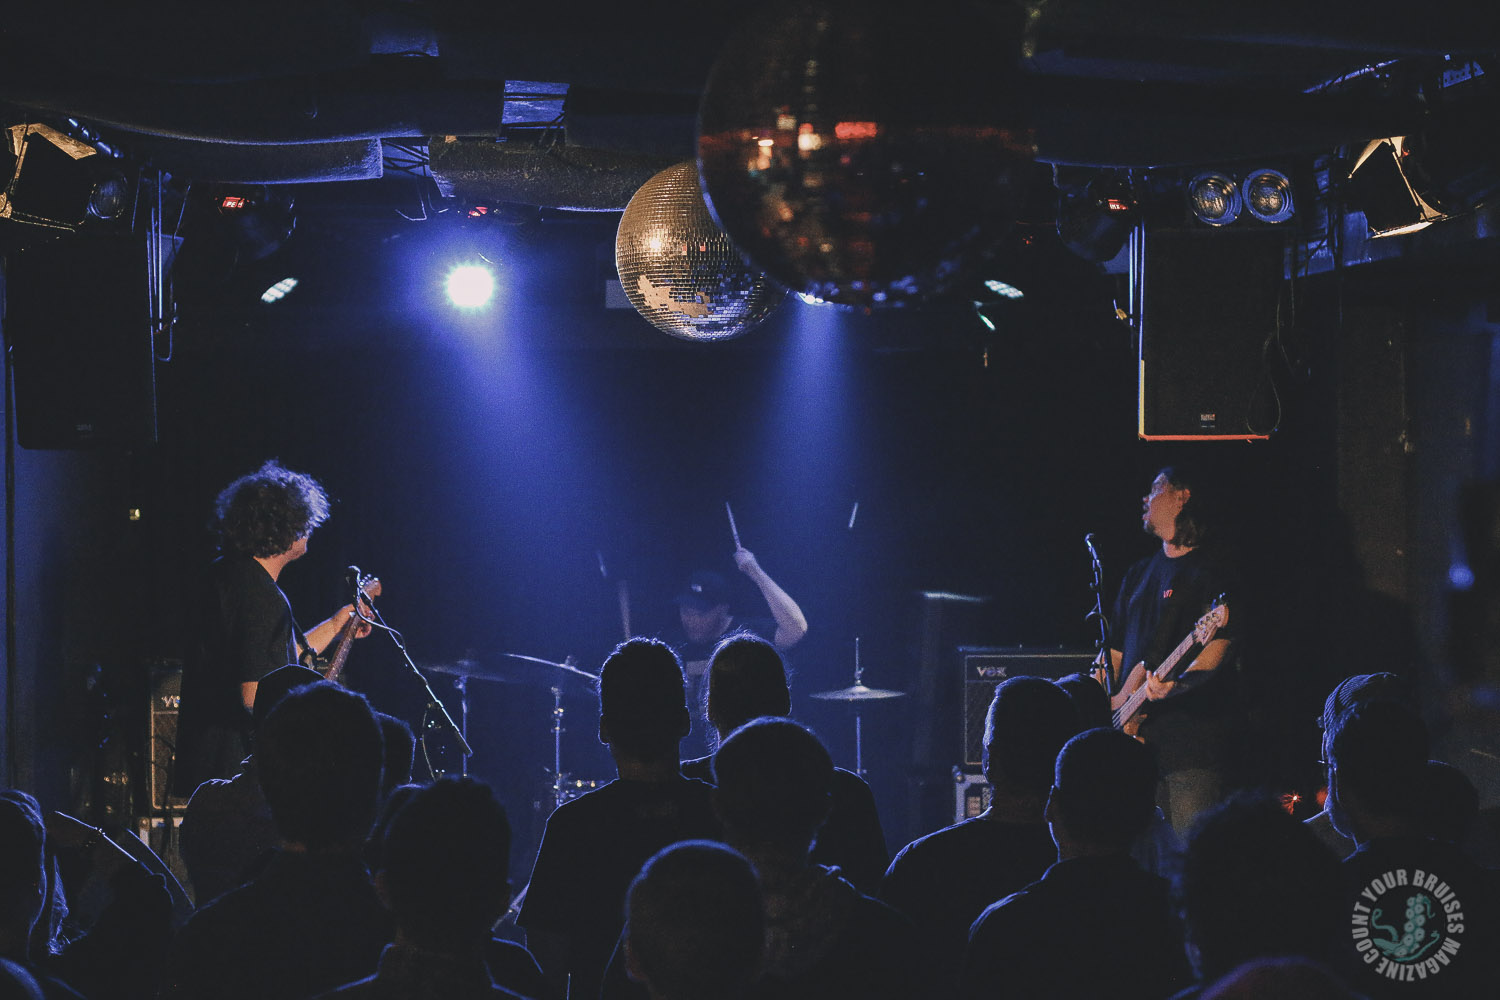 Spielbergs am 03.12.2019 im Lux in Hannover